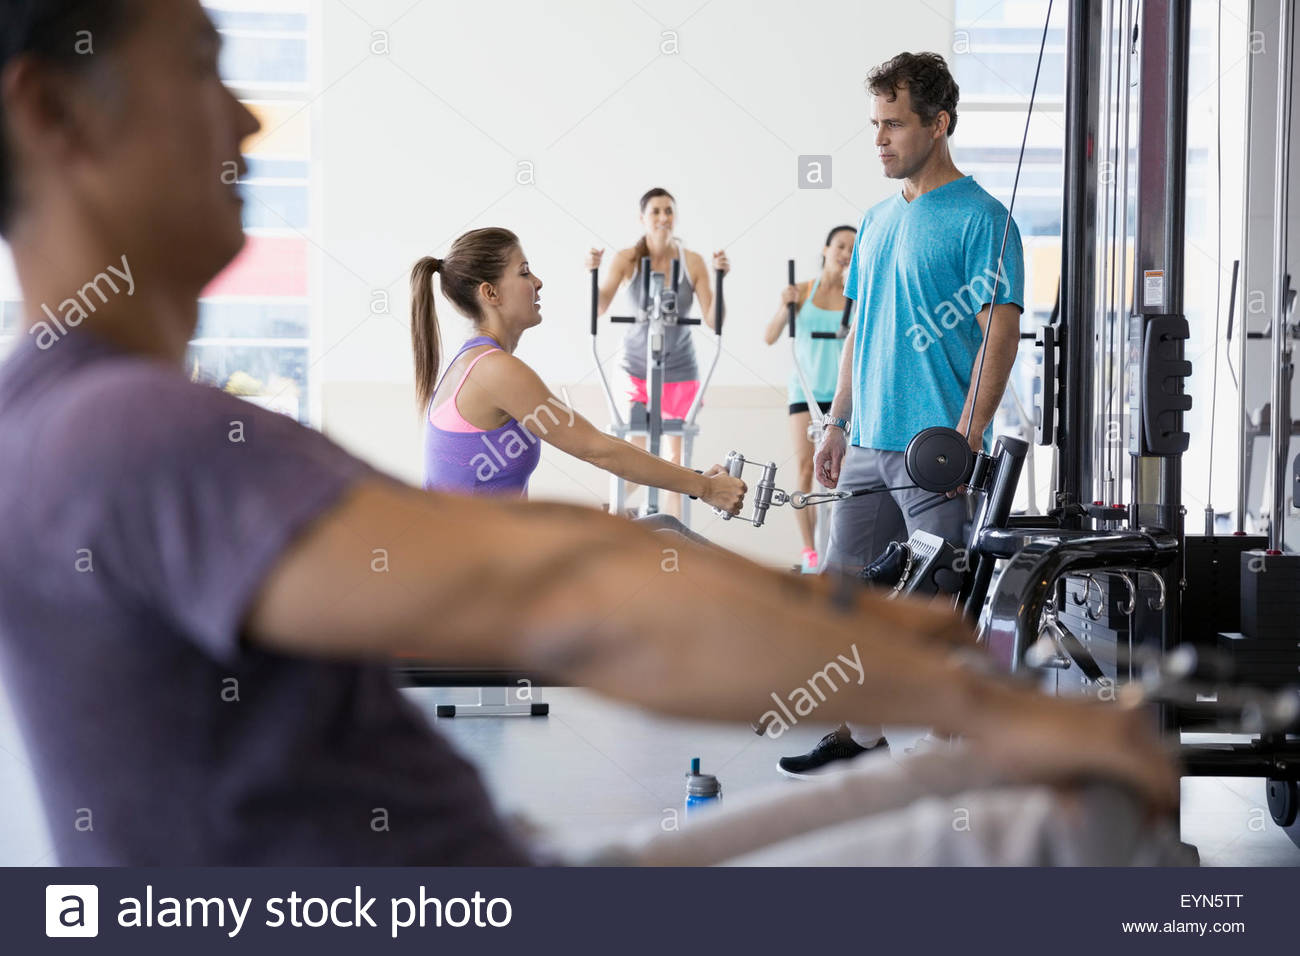 People working out at gym Photo Stock